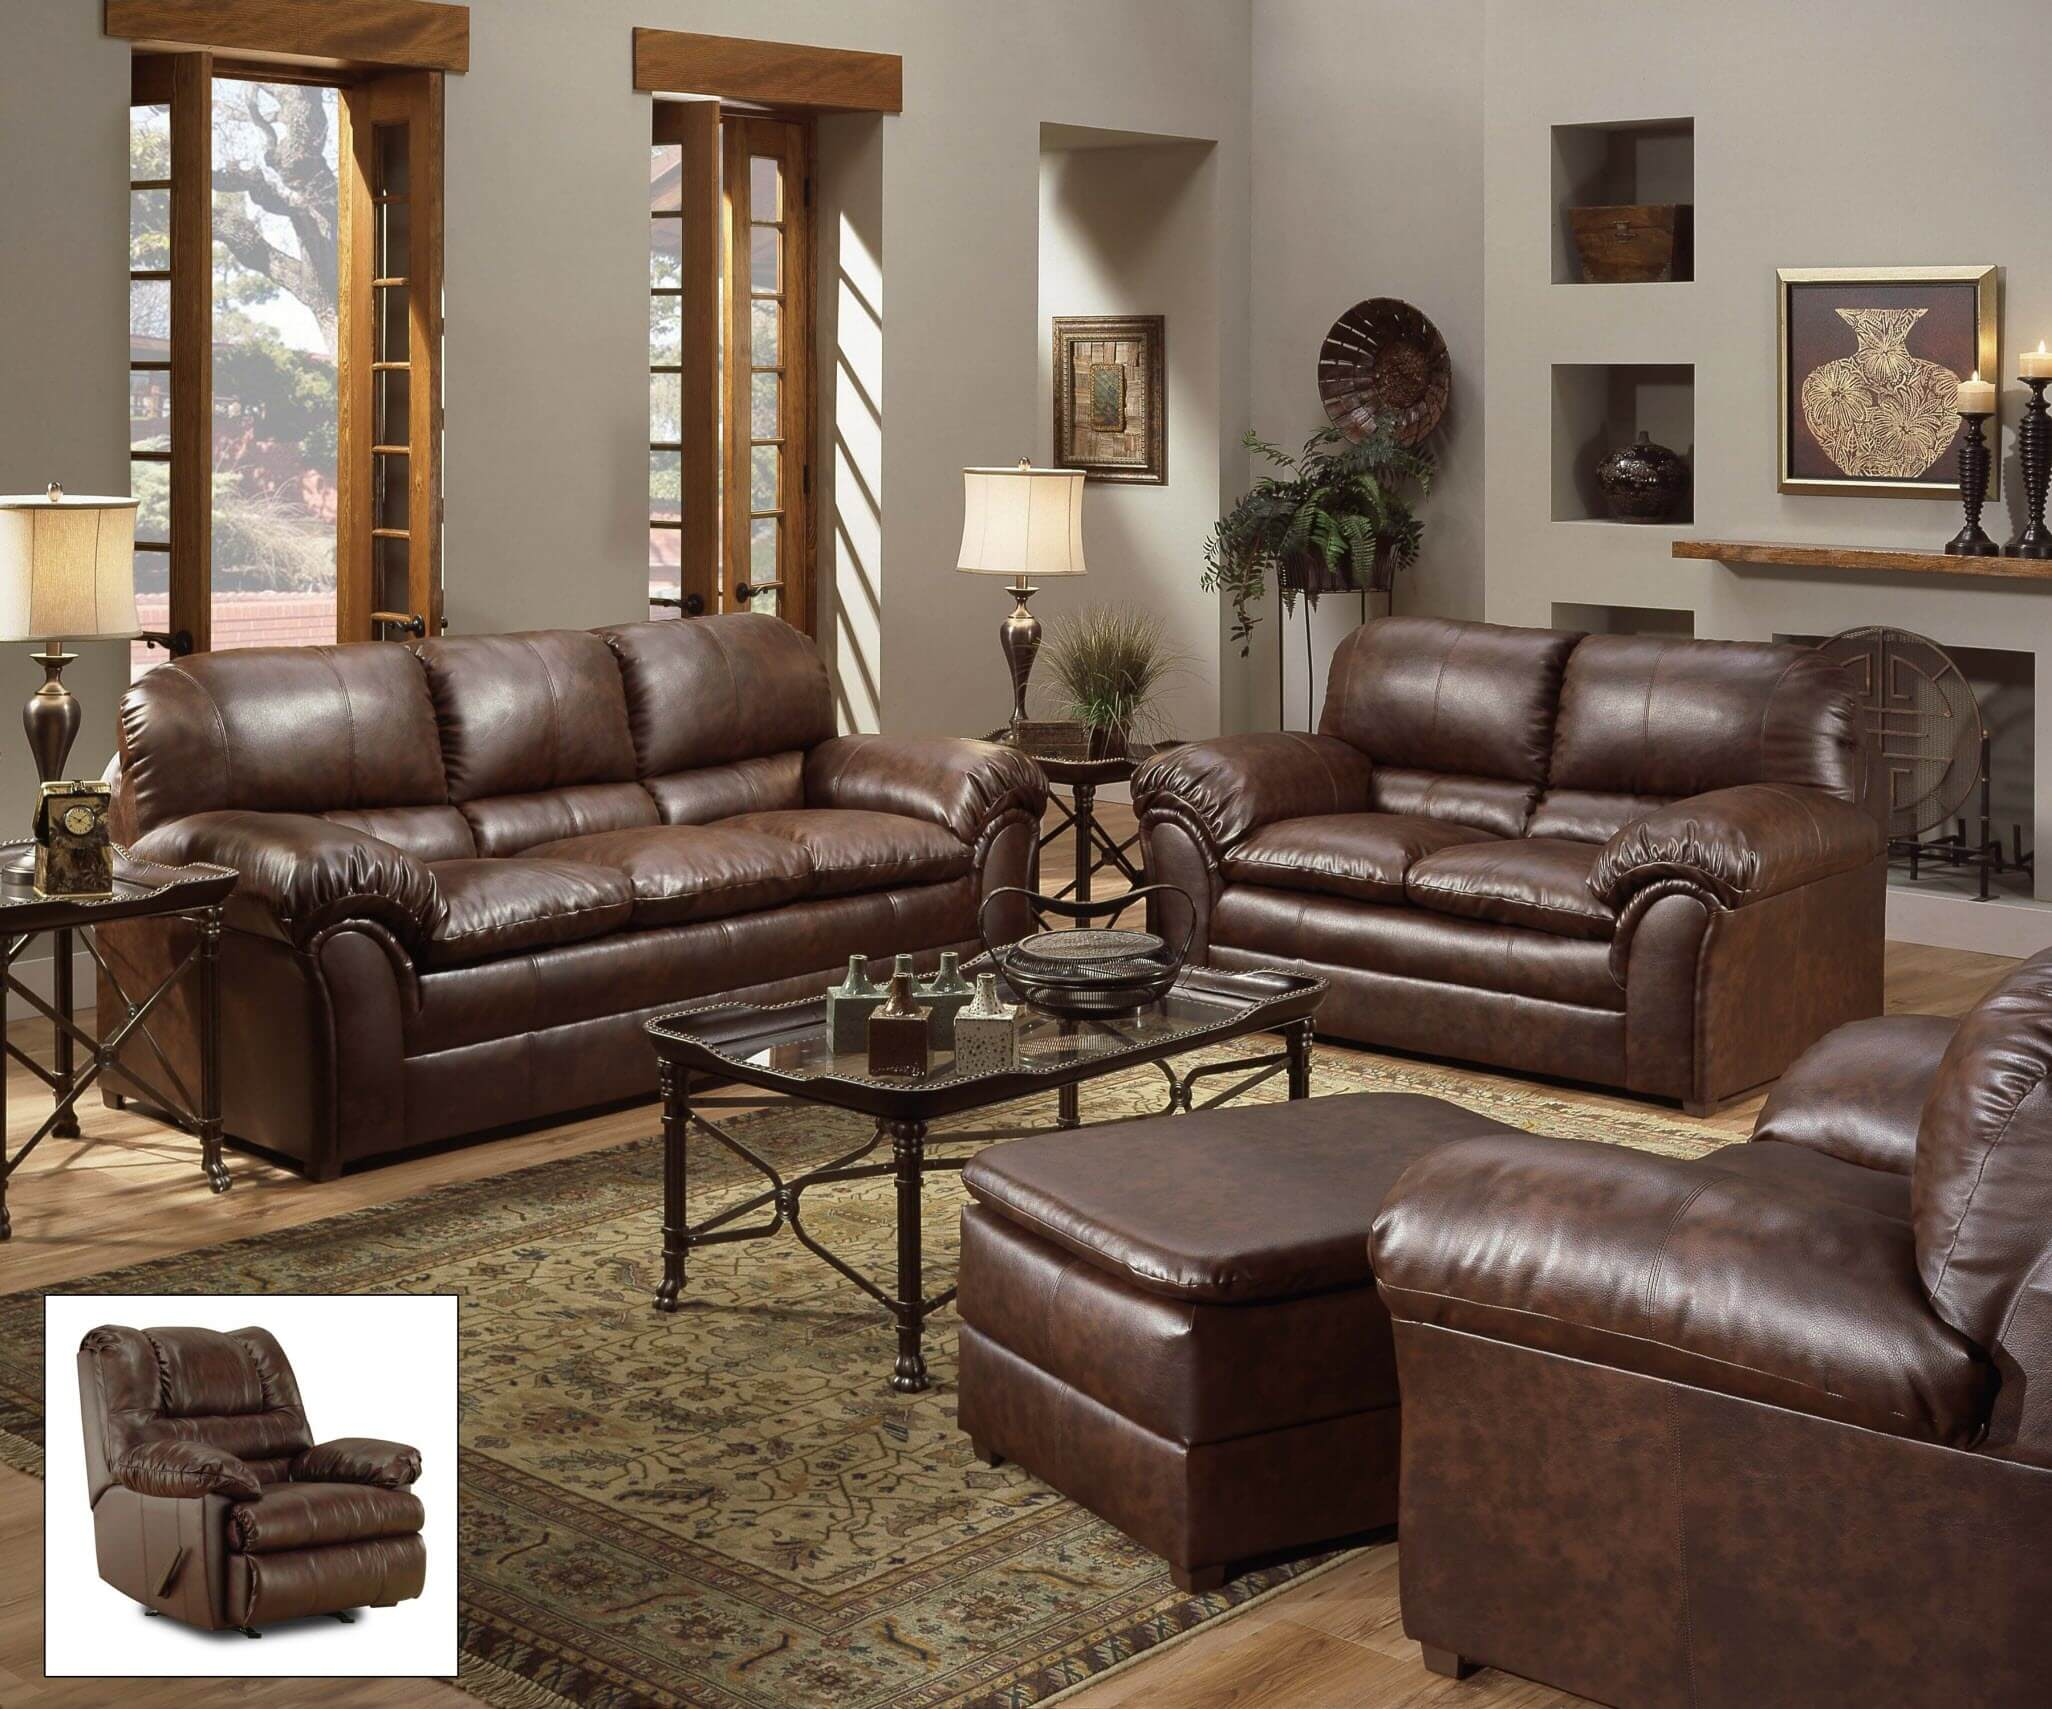 Geneva mahogany sofa and loveseat living room sets - Cheap living room furniture sets uk ...